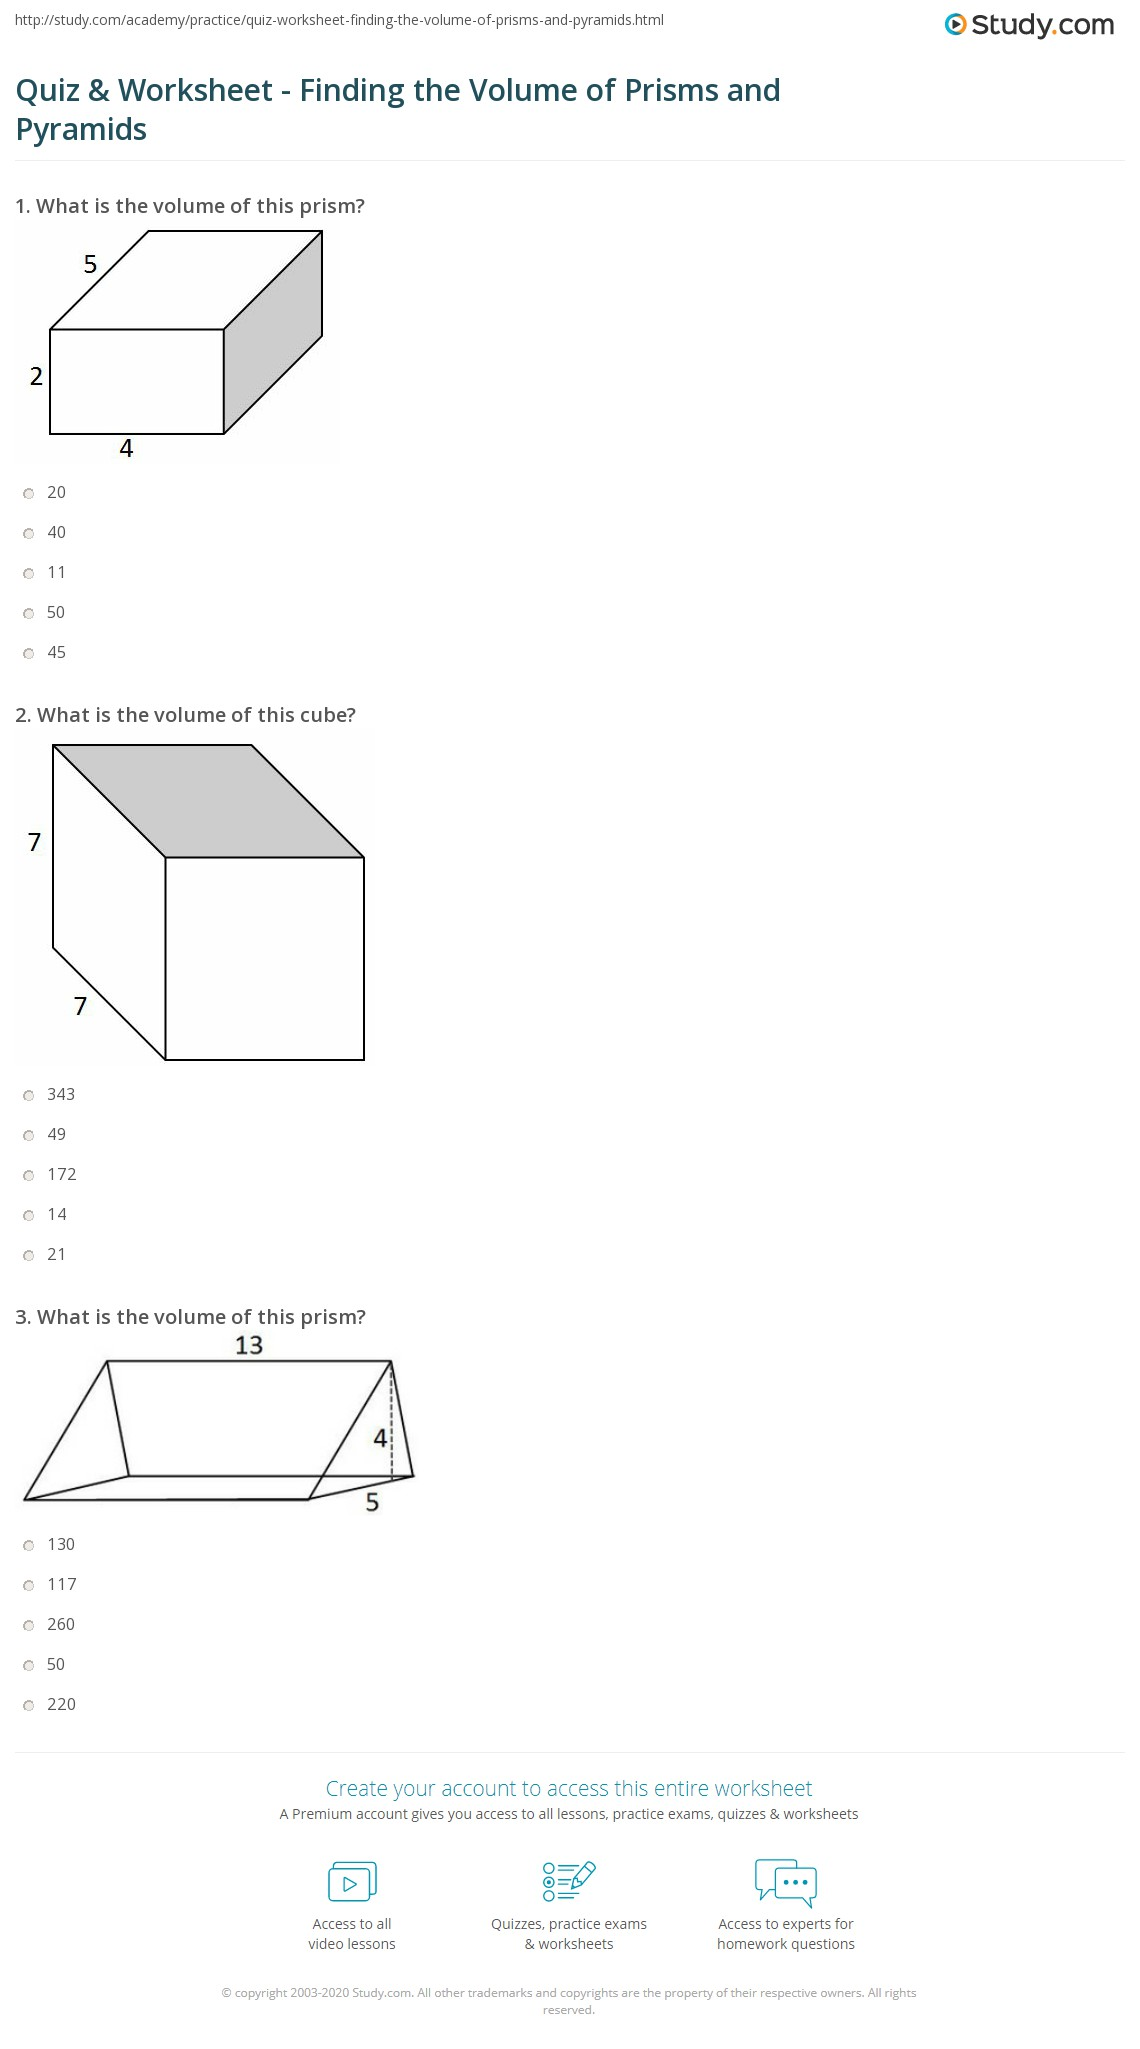 worksheet Volume Of Pyramid Worksheet quiz worksheet finding the volume of prisms and pyramids print worksheet